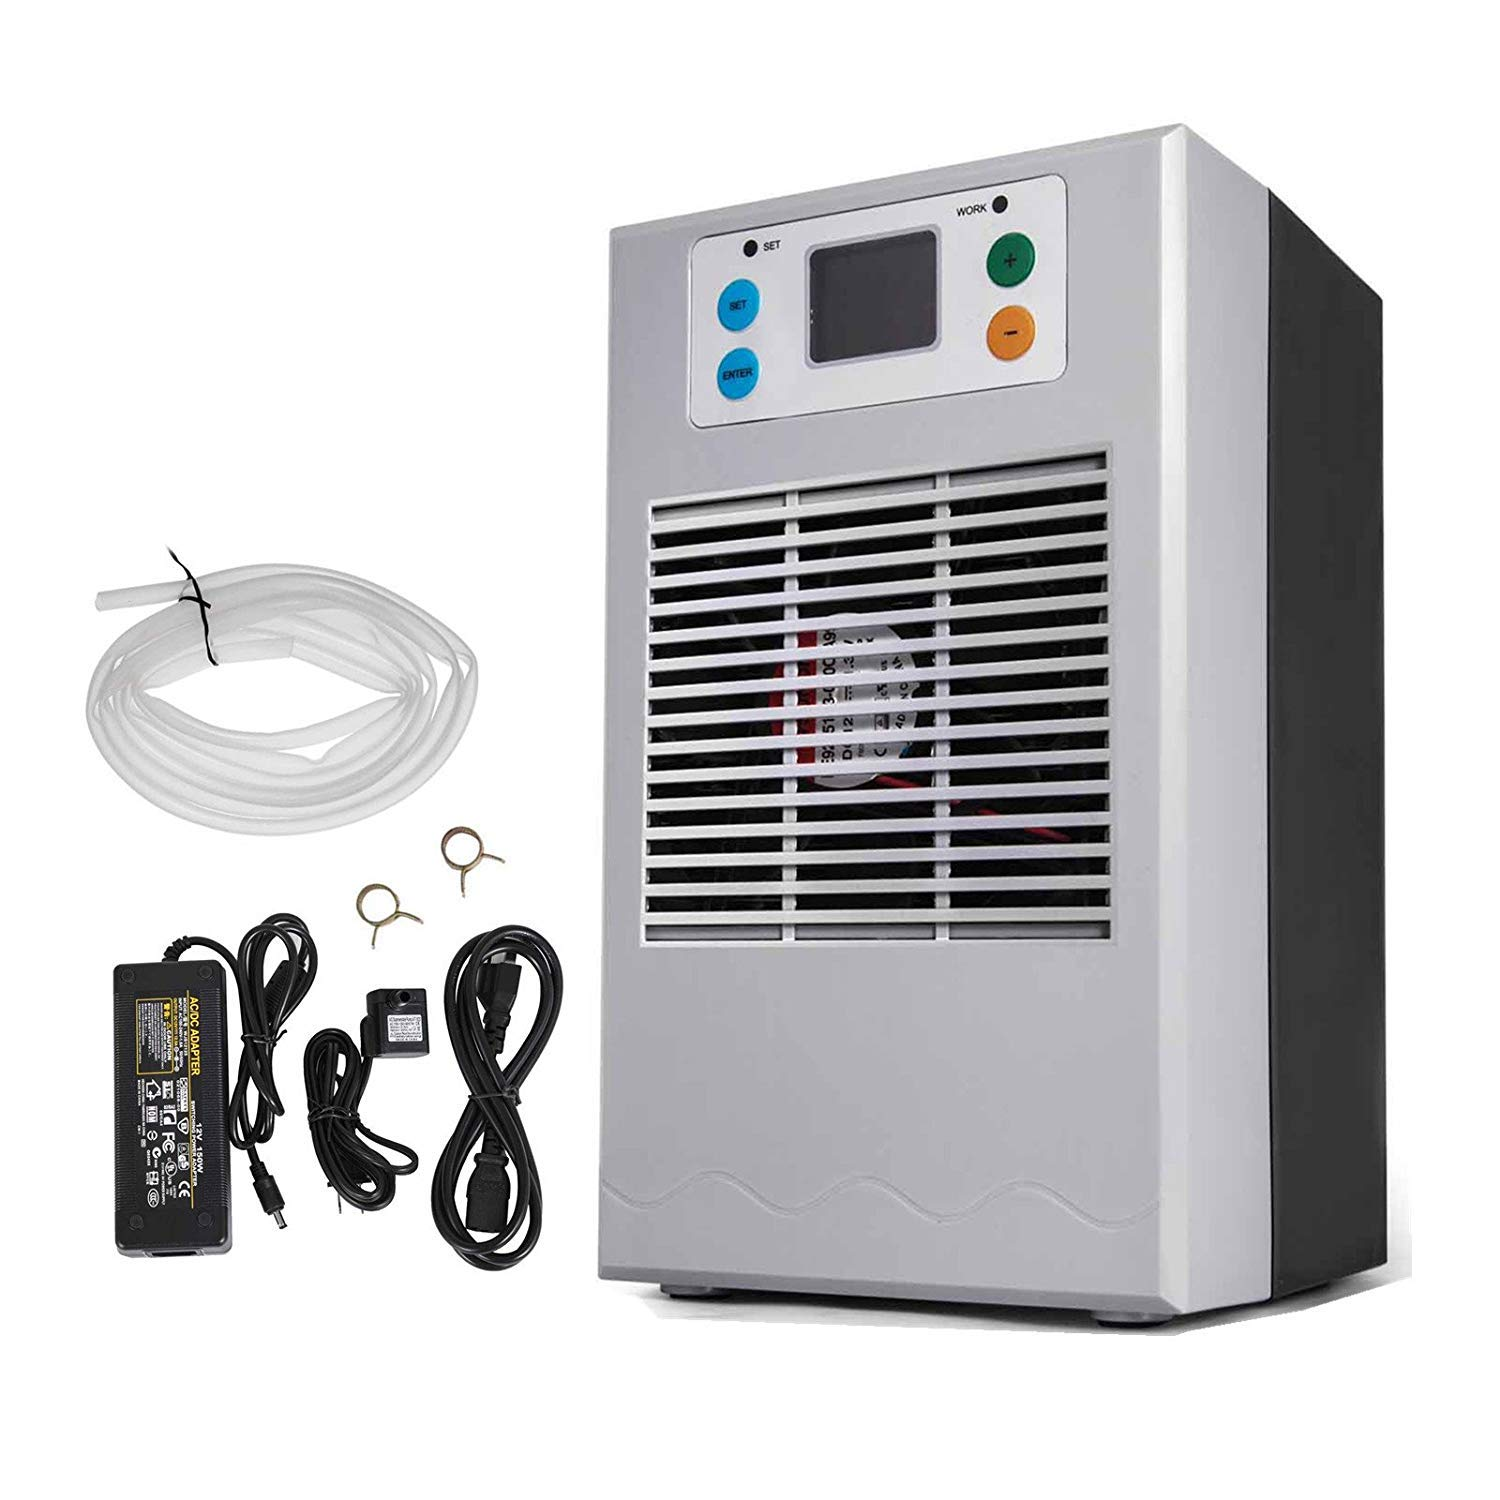 Mophorn 20L 70W Aquarium Water Chiller with Pump Kit Fish Tank Chiller Water Cooling Machine Shrimp Tank Water Cooler for Fresh Water Salt Water Plant Tank Hydroponic Chiller